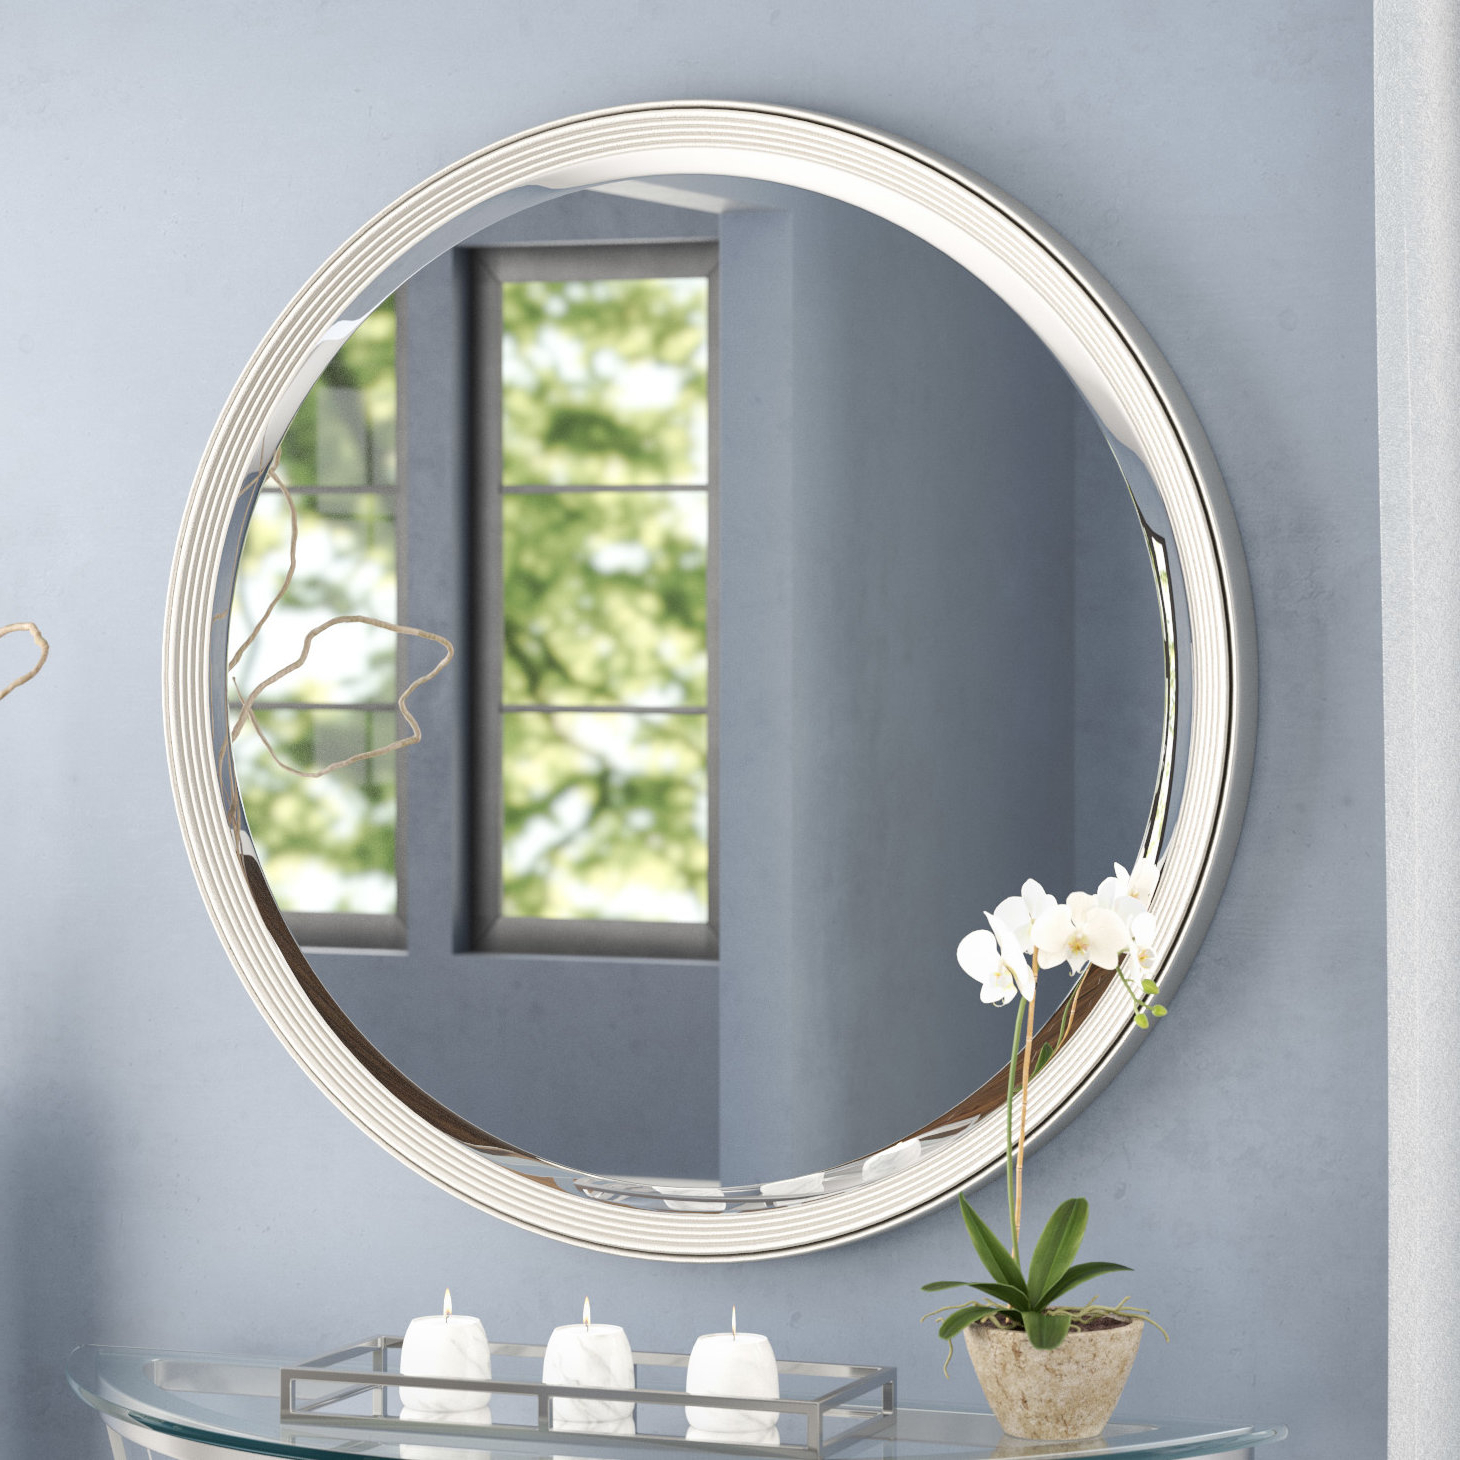 Widely Used Round Silver Accent Wall Mirror Intended For Round Silver Wall Mirrors (View 19 of 20)